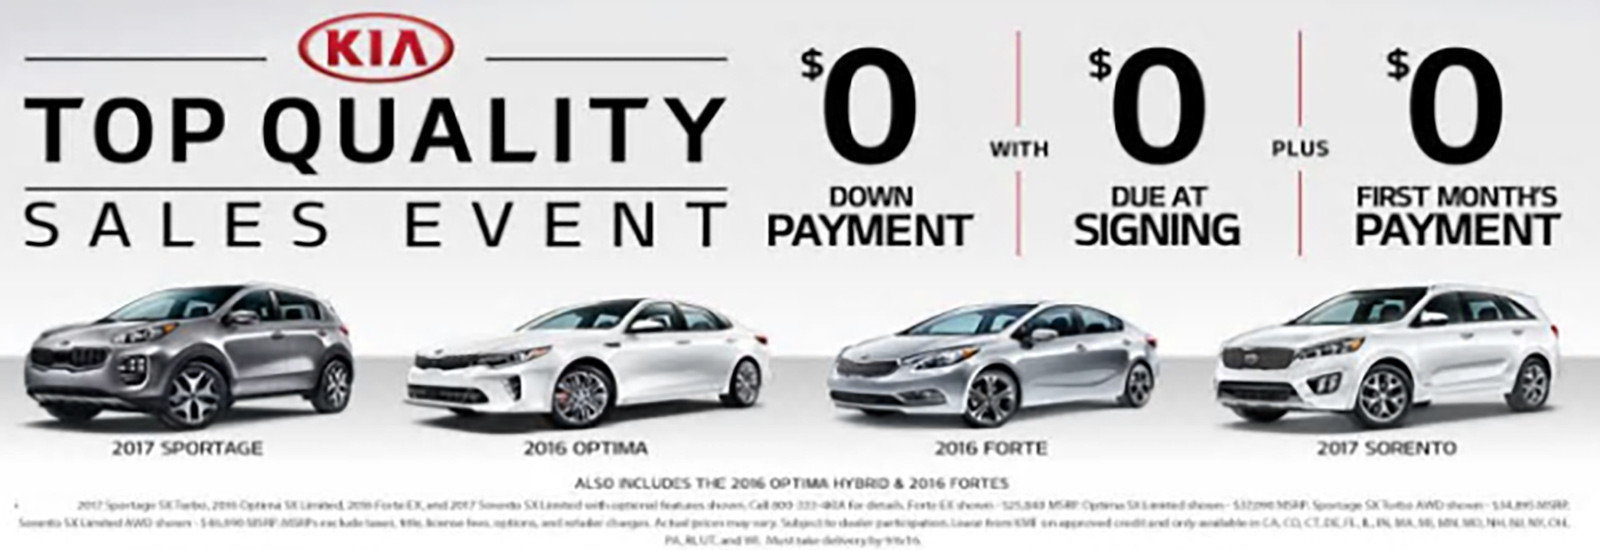 Top Quality Sales Event